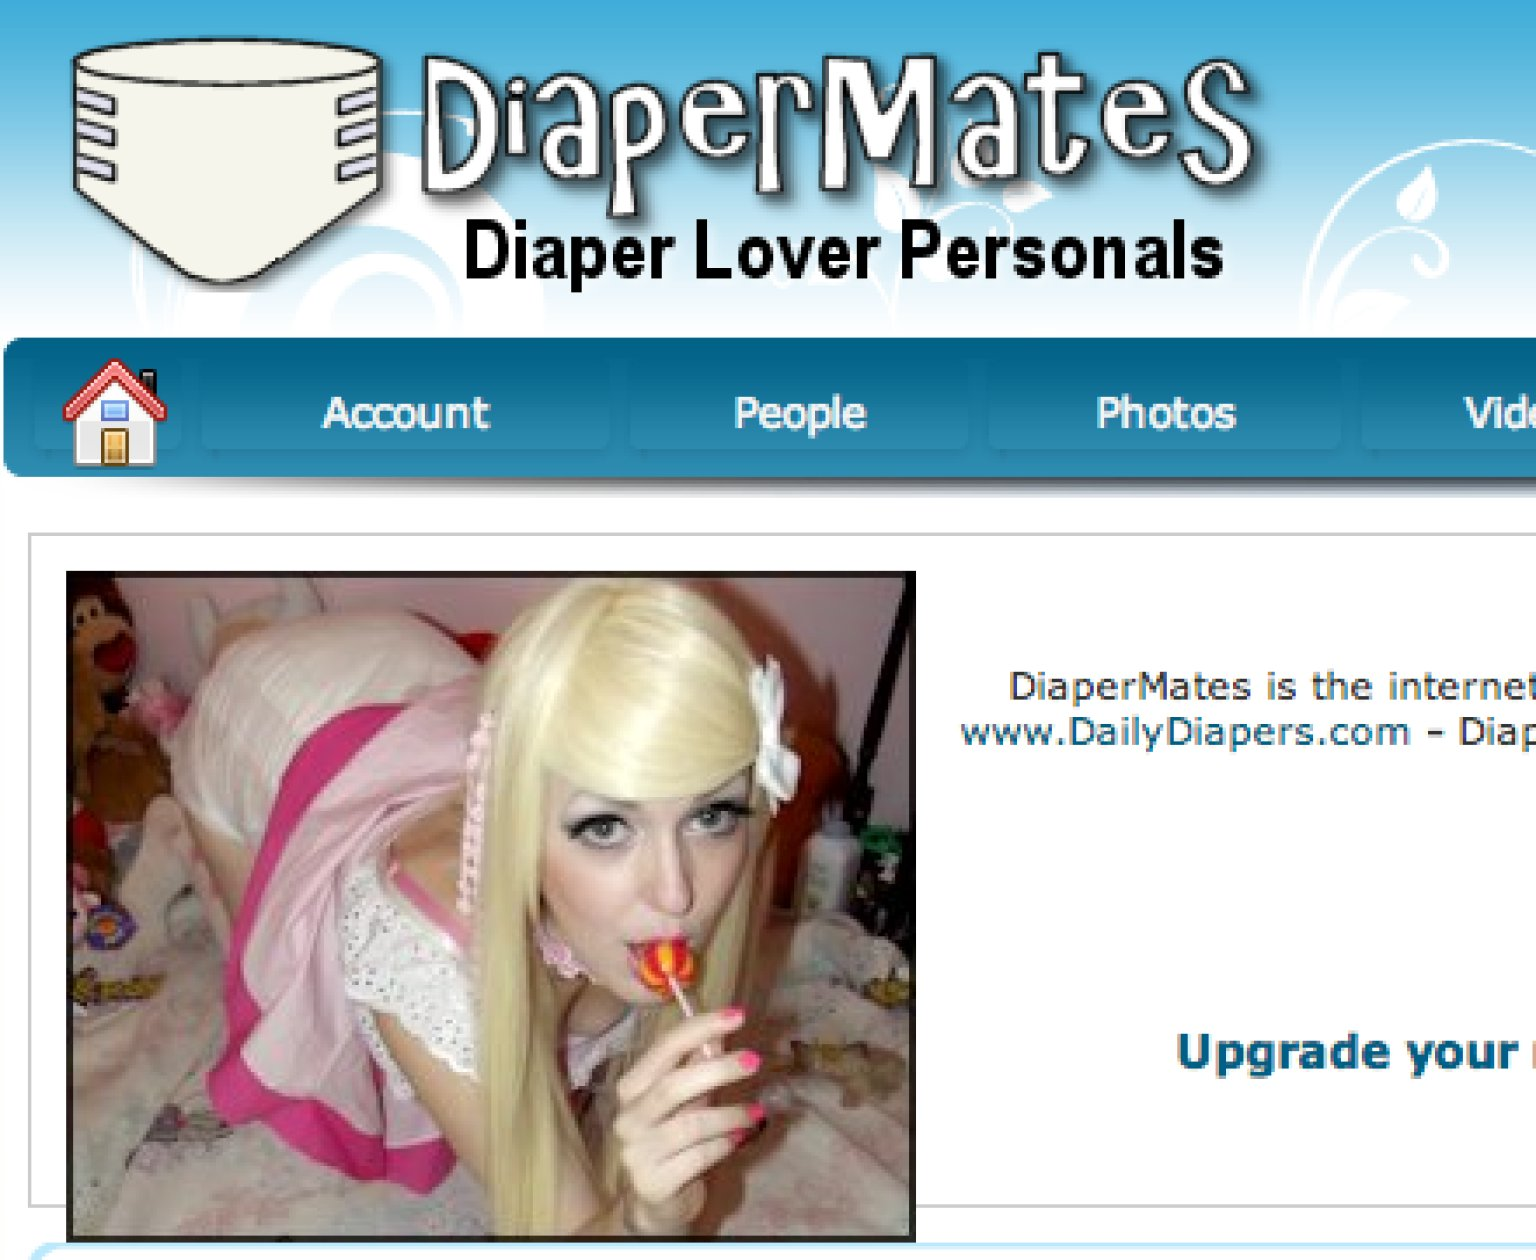 page pacemaker images view enter free adult personals